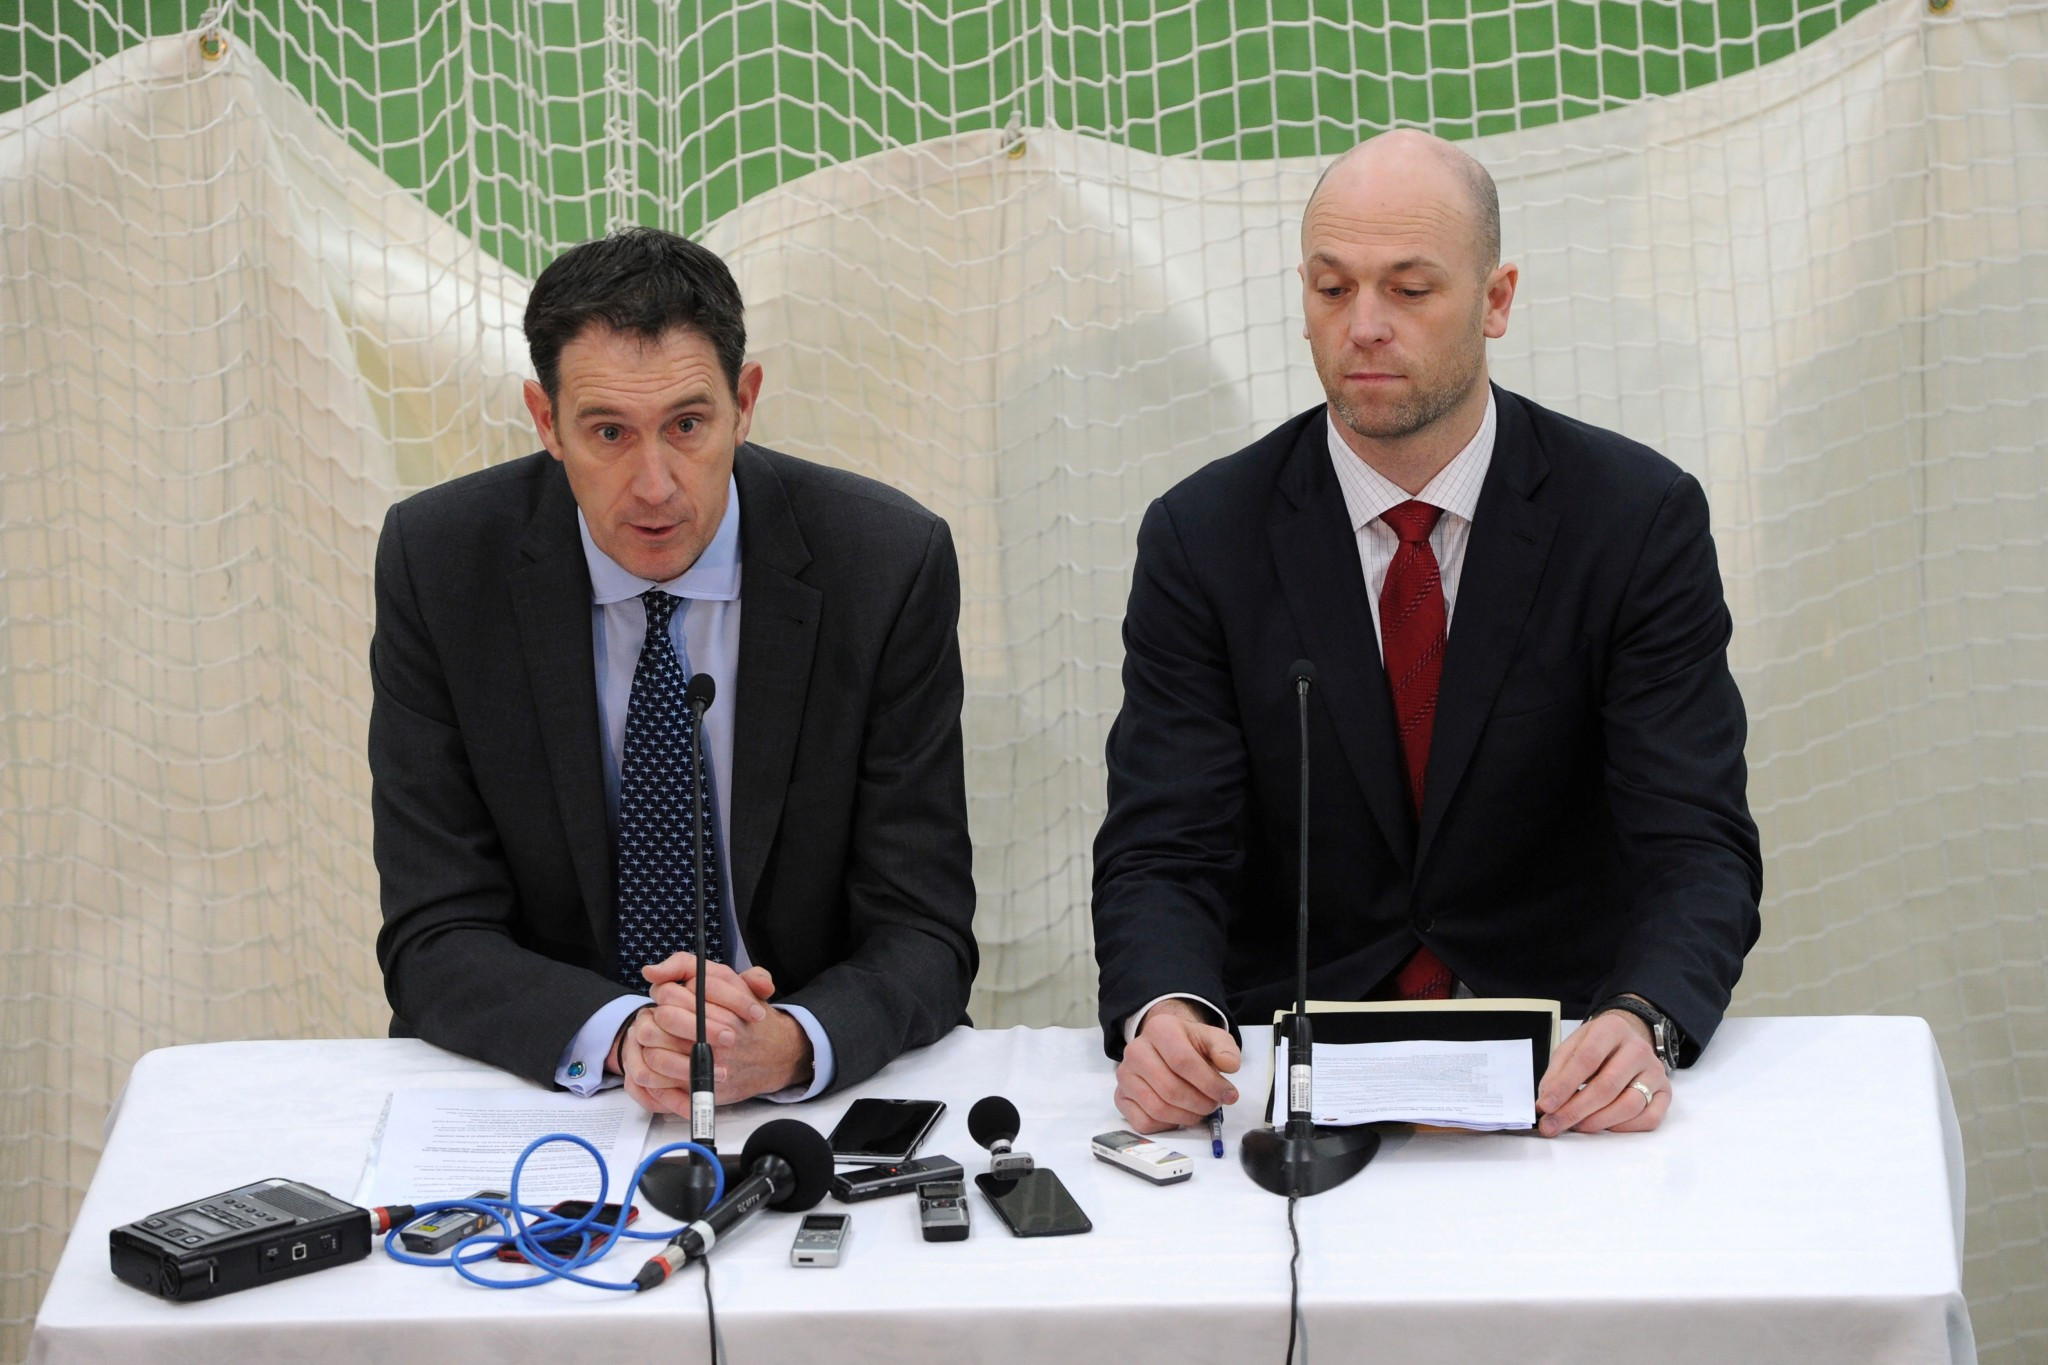 New deal agreed in principle over Australian cricket pay row